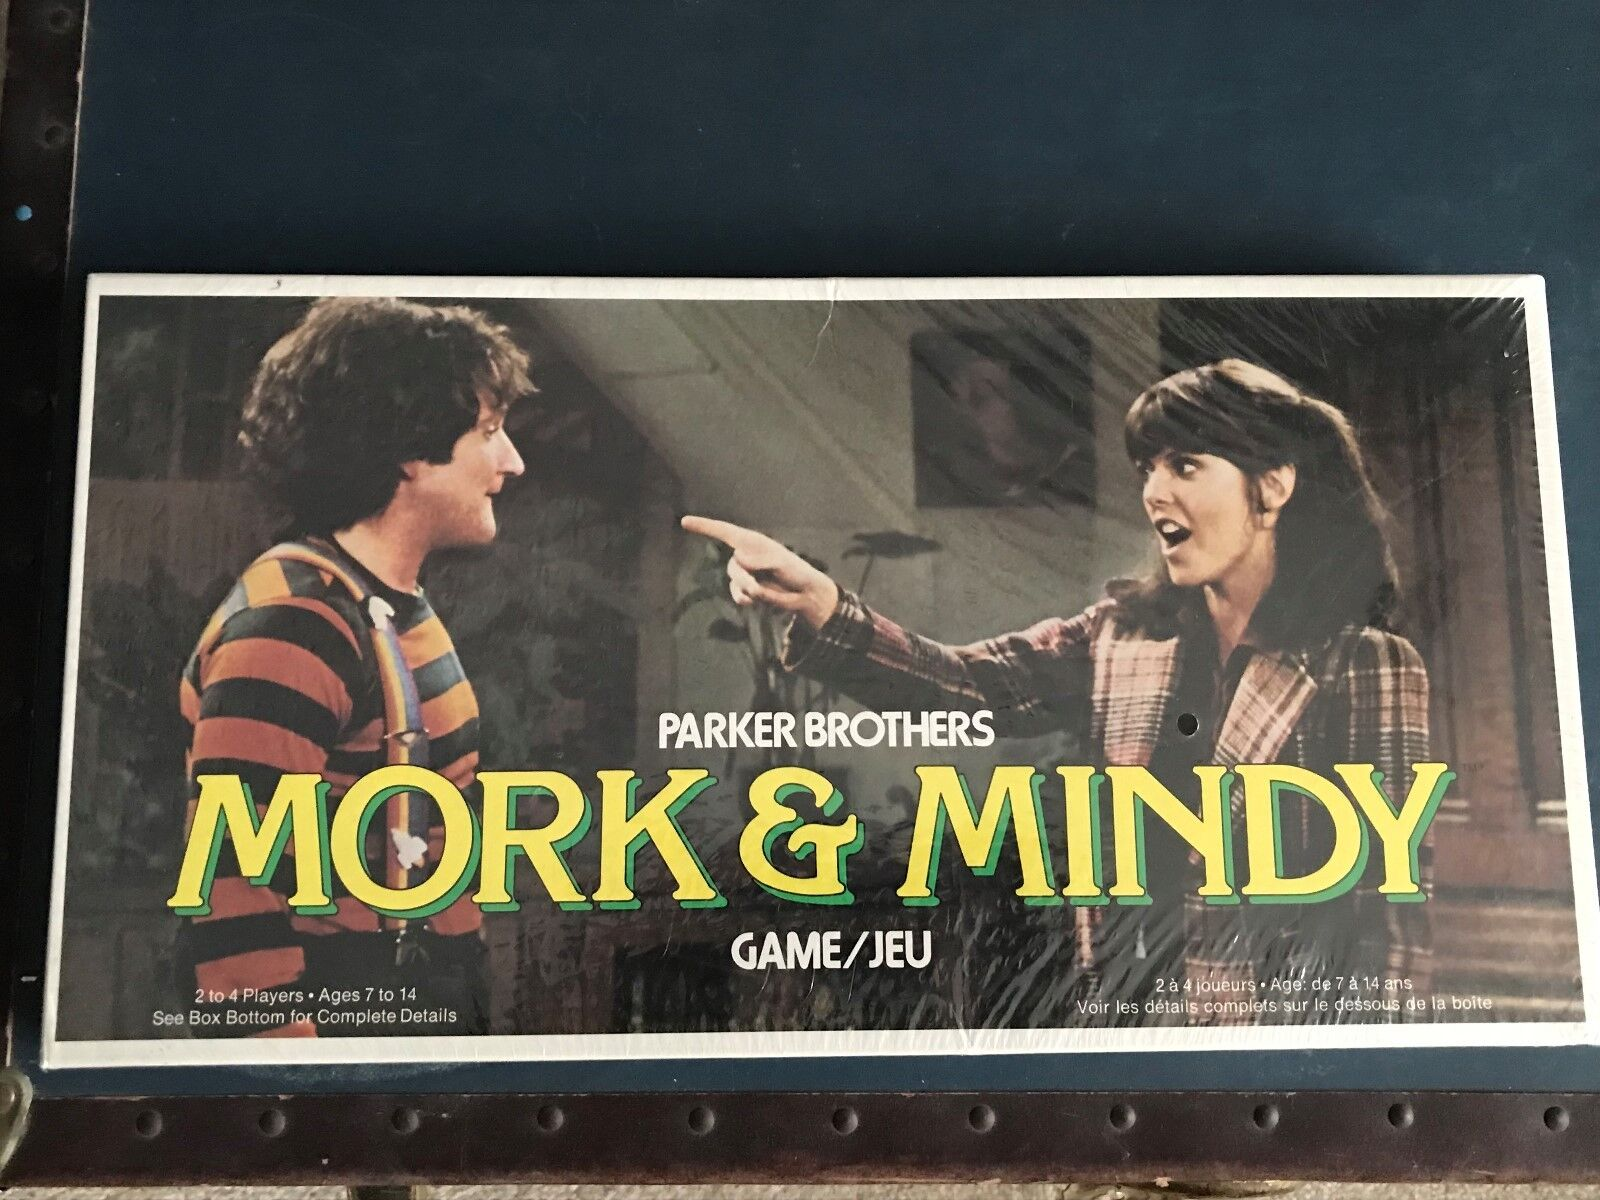 VINTAGE 1979 PARKER BrossoHERS MORK & MINDY GAME (Robin Willams) (Factory Sealed)